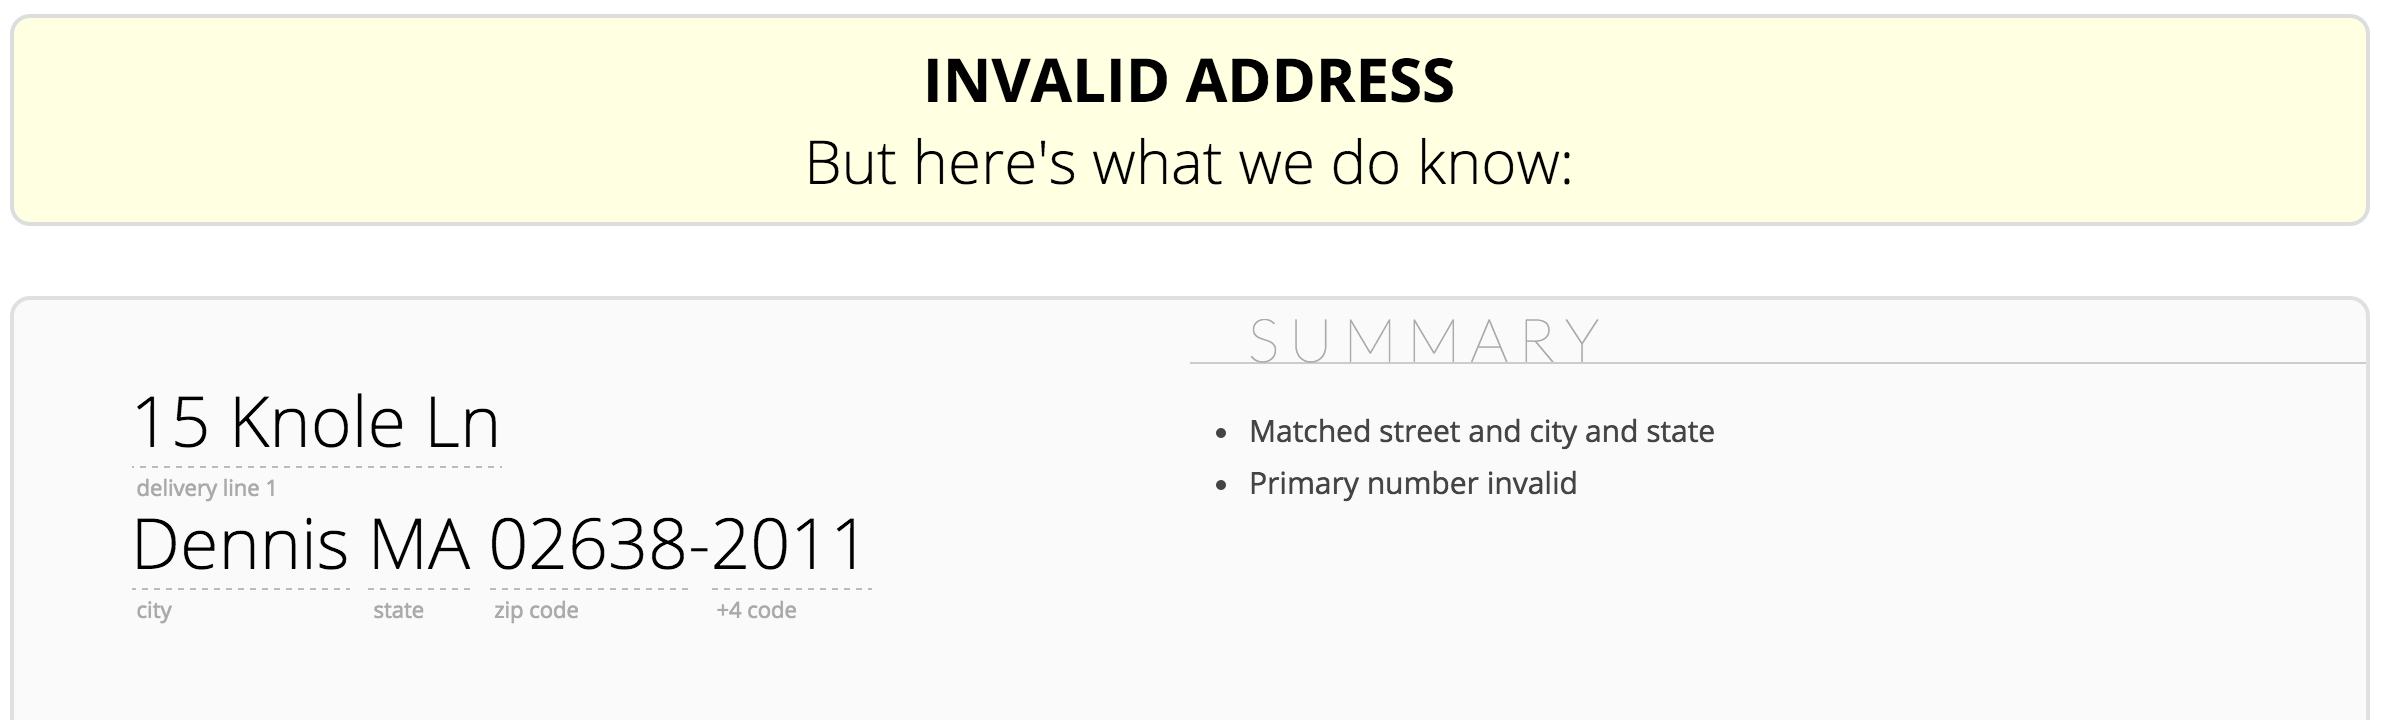 Google validates incorrect address